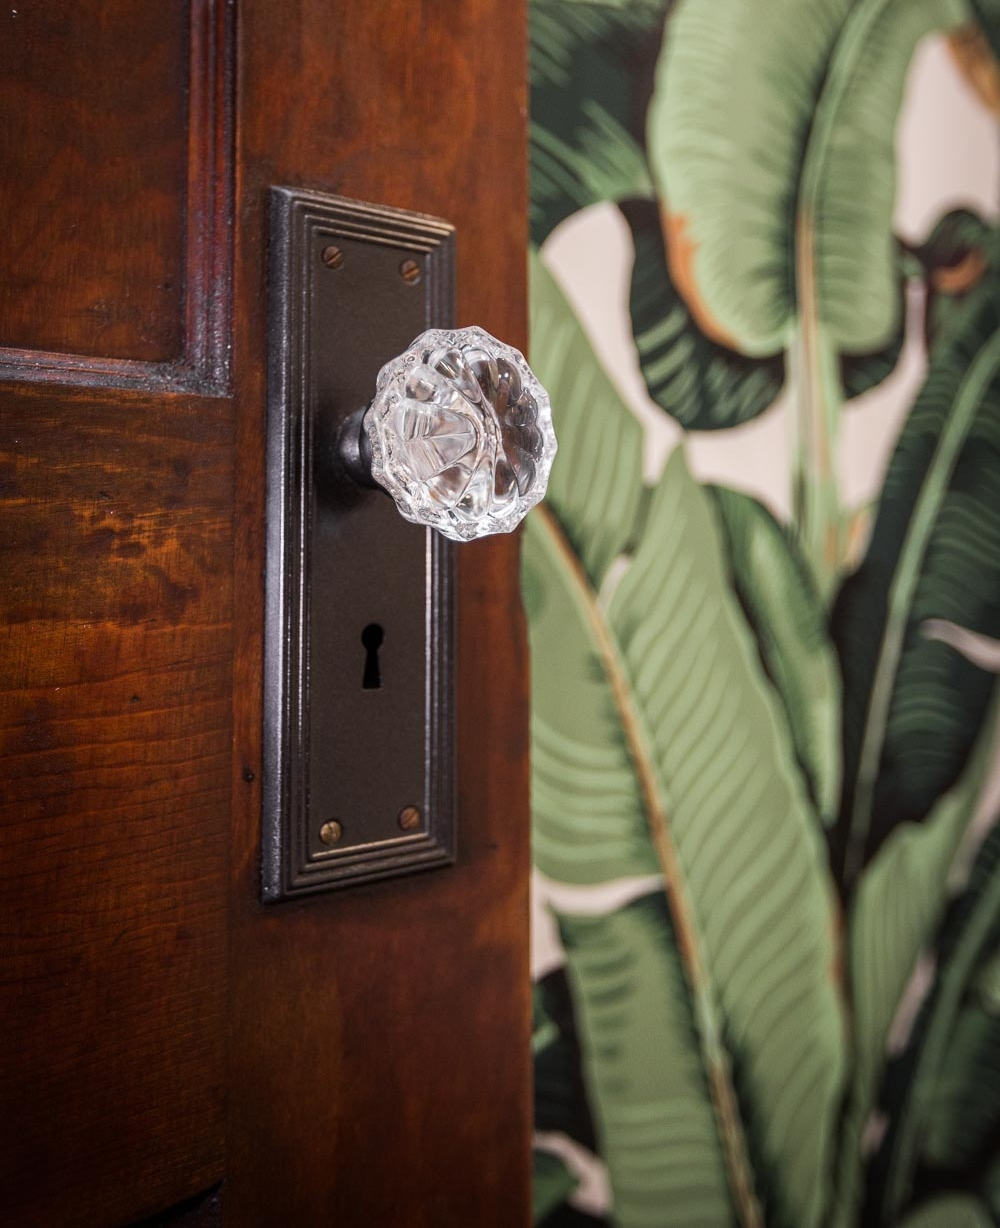 The old door plates were reused, but the crystal knobs are new. We refinished the old doors. The banana leaf wallpaper is hand printed.